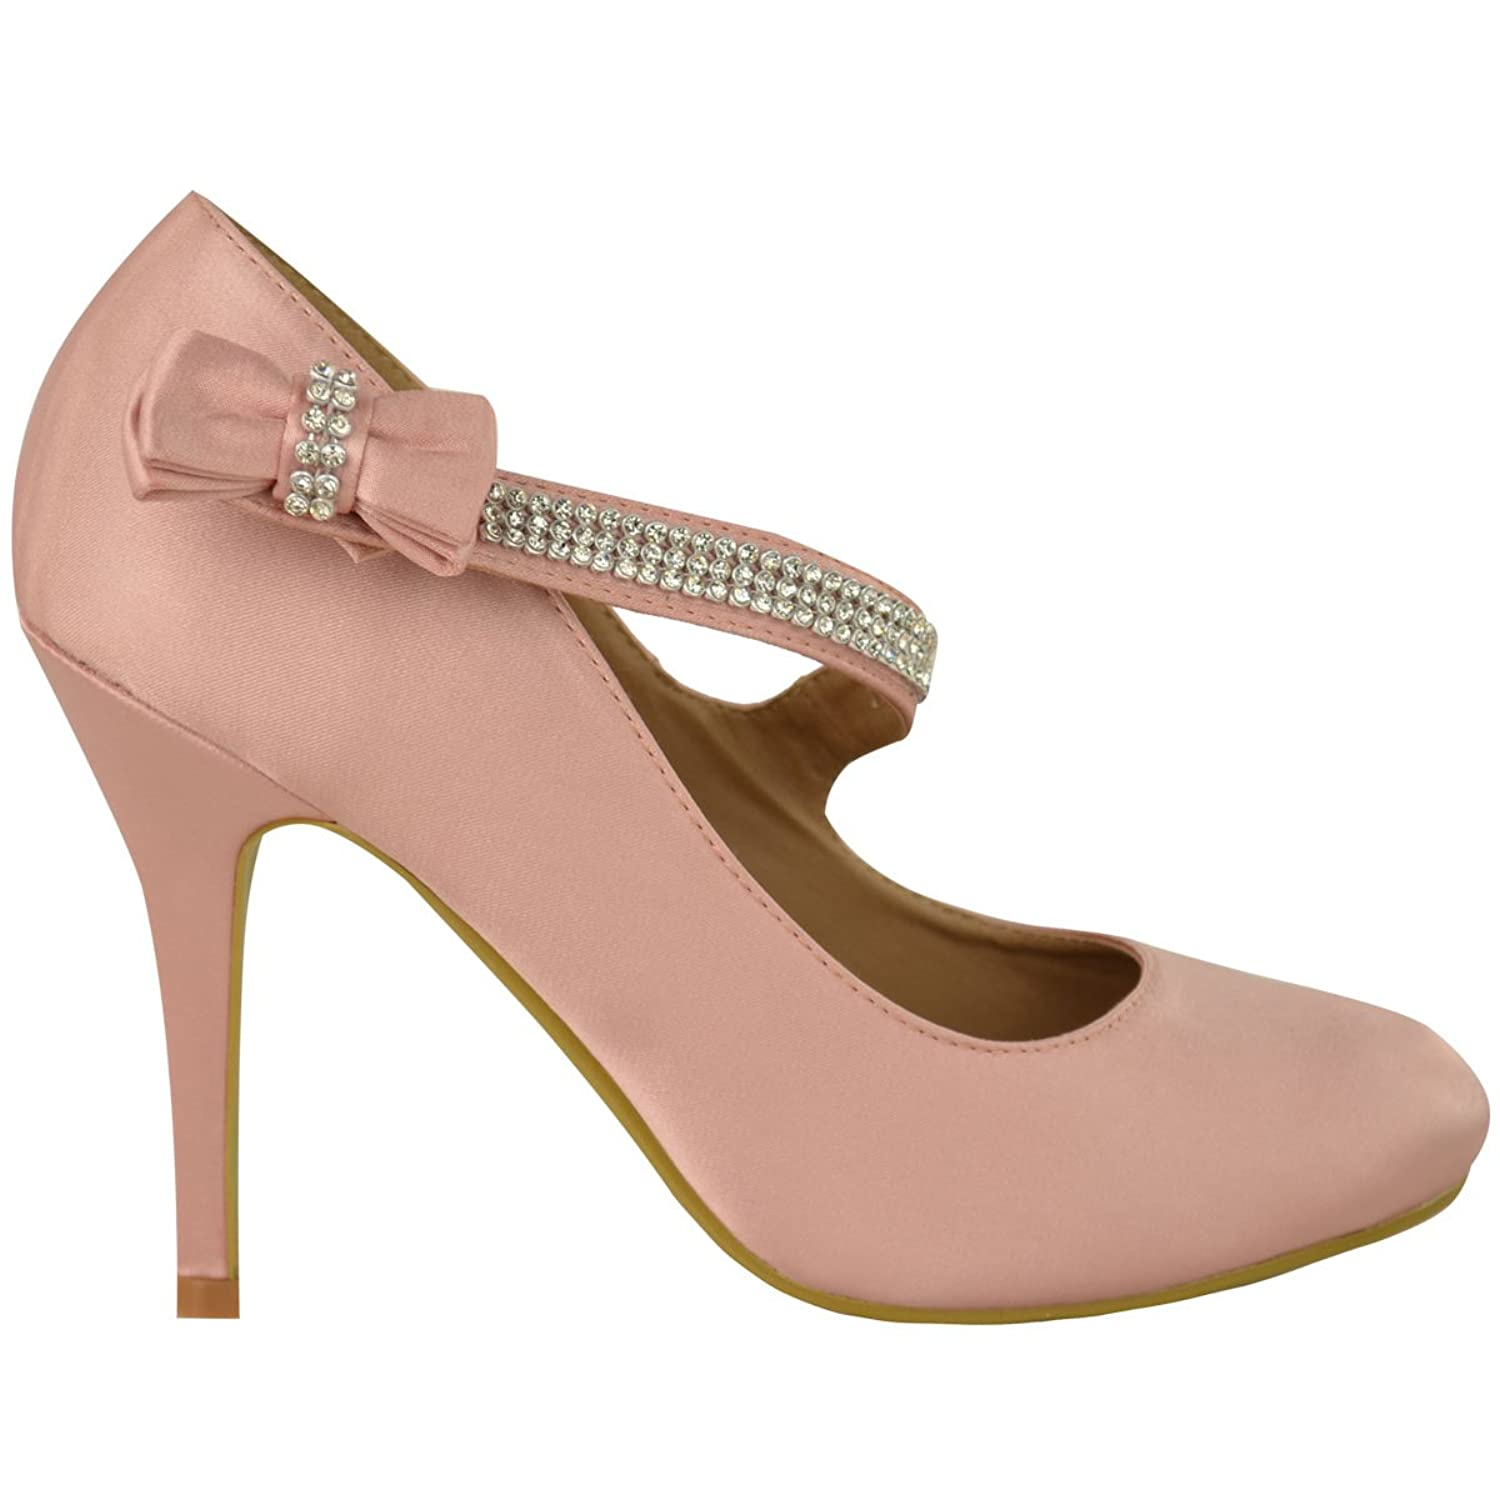 Branded Womens Ladies Bridal Wedding Prom Party High Heel Classic Pumps  Shoes Size: Amazon.co.uk: Shoes & Bags